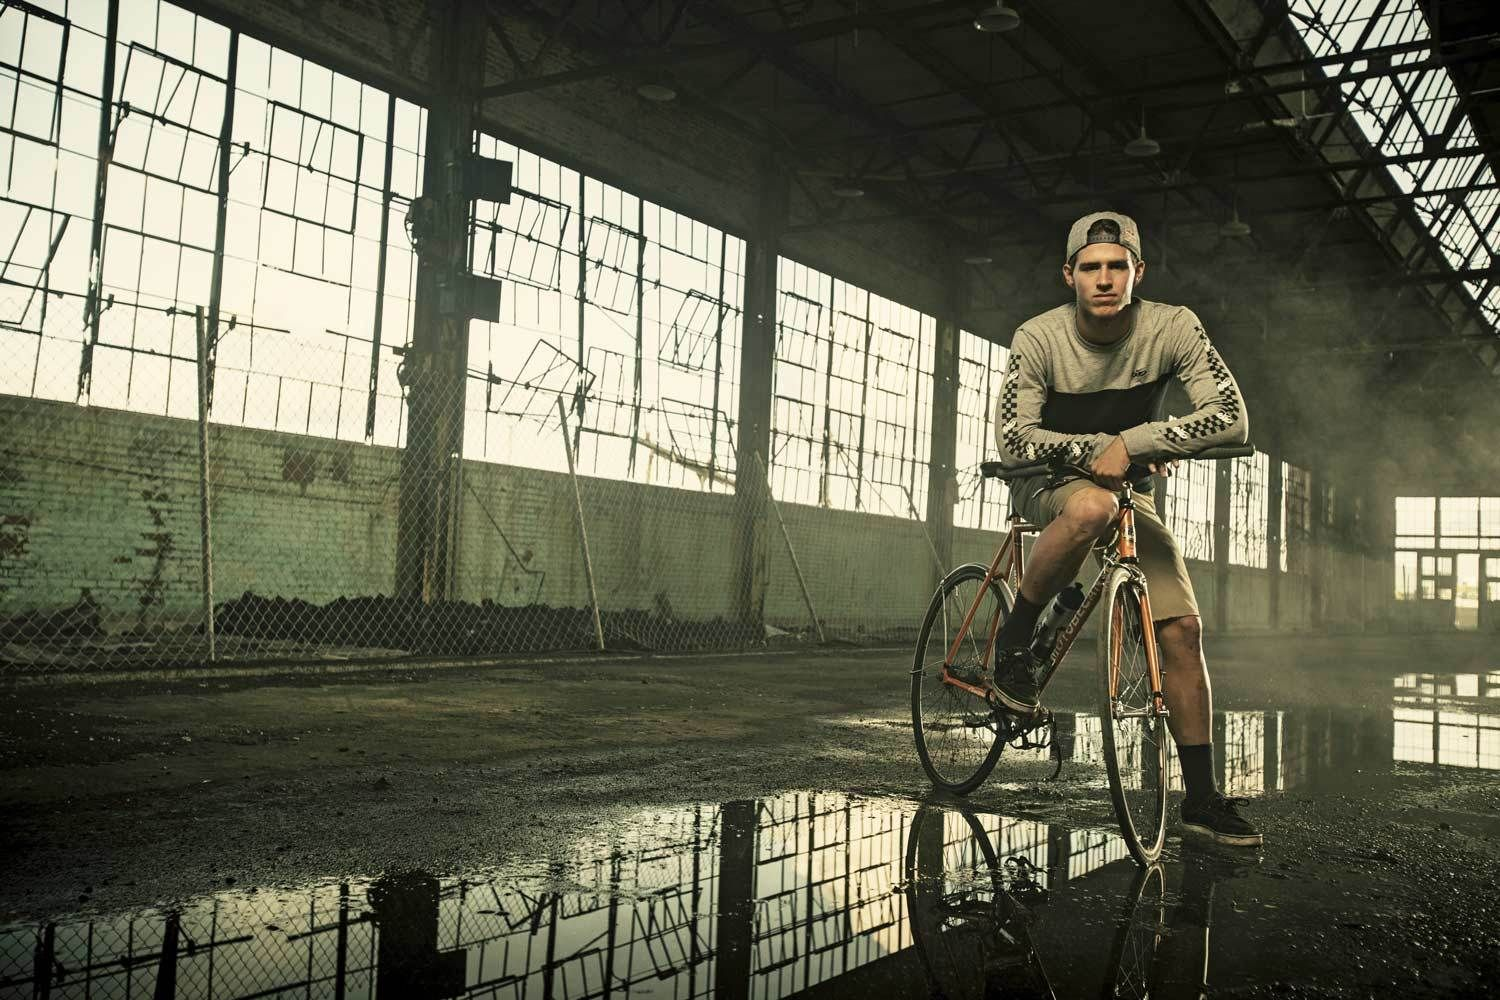 Cyclist Addison Zawada for Red Bull